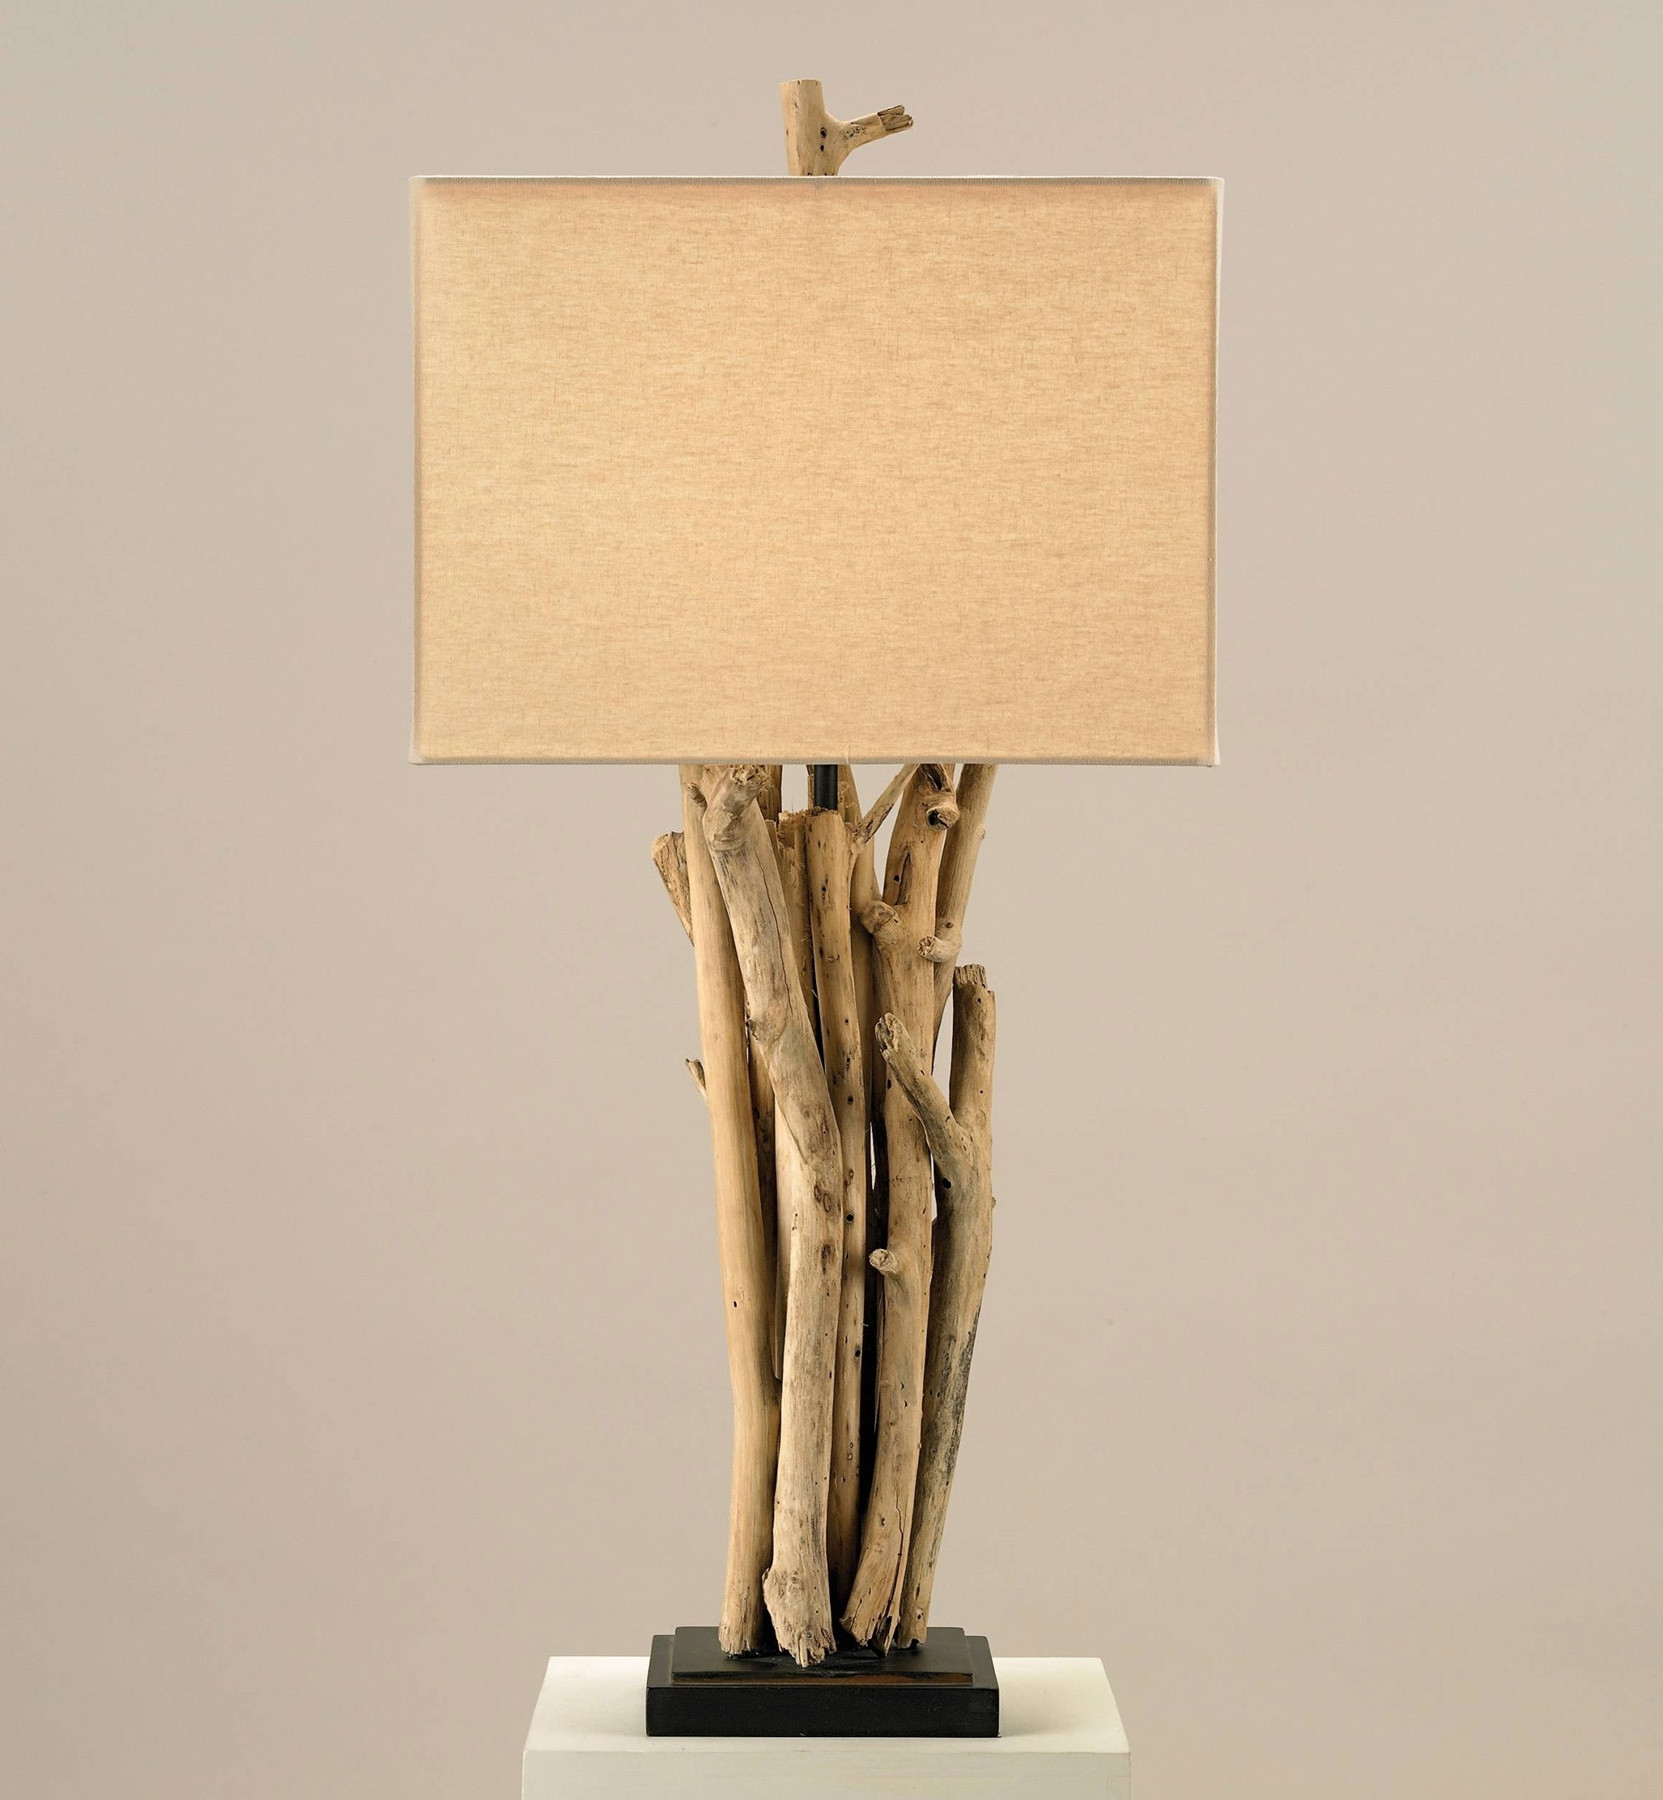 Currey And Company 6344 Driftwood Table Lamp Pertaining To Most Recently Released Wood Table Lamps For Living Room (View 5 of 20)